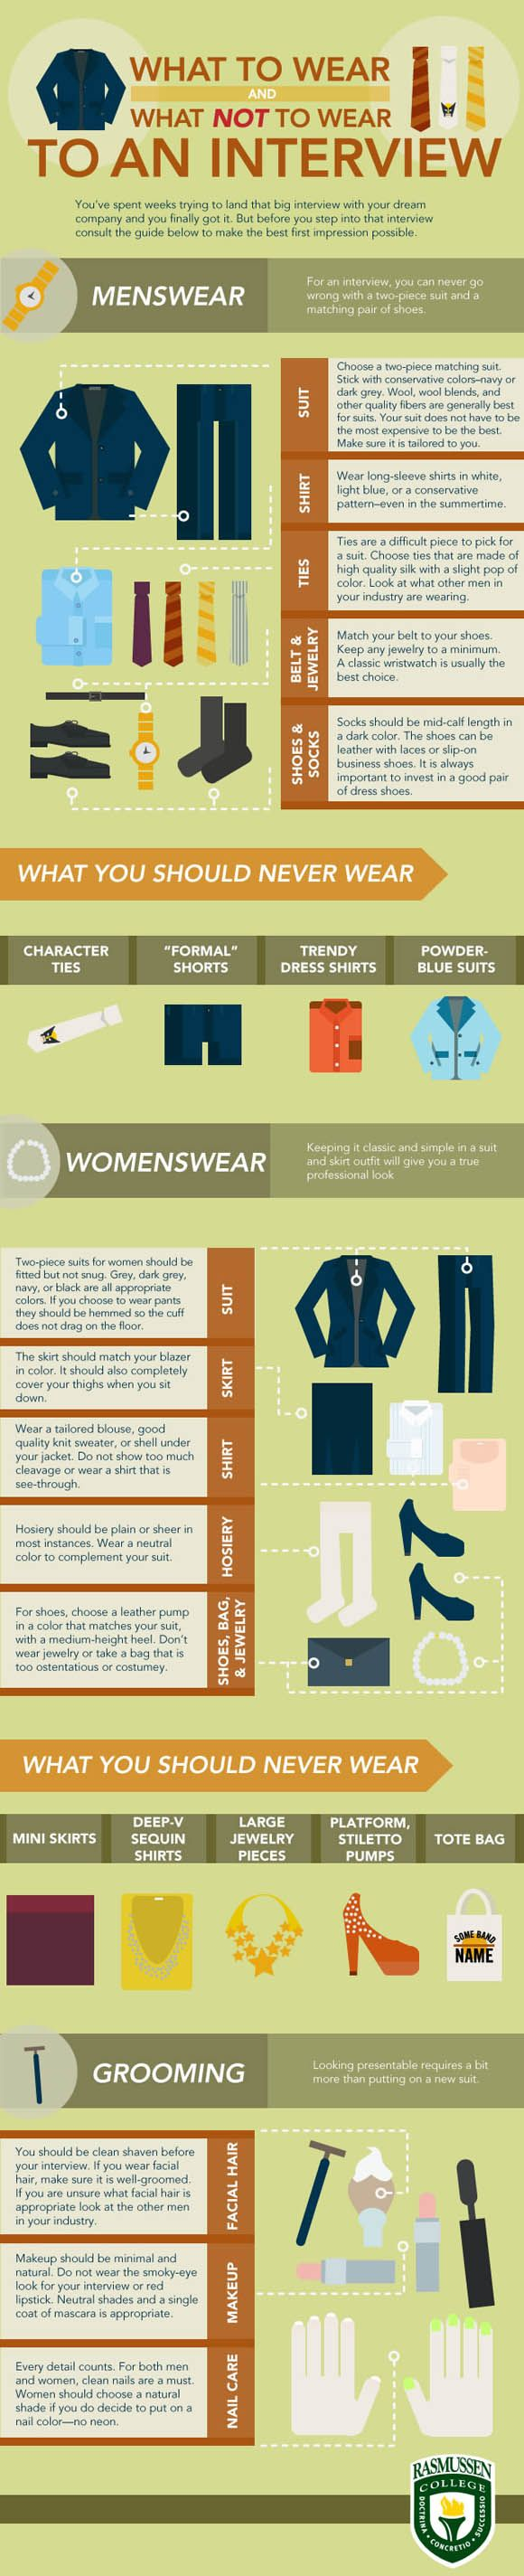 #hr #recruitment: Wondering what to wear for your big interview? Check out this infographic for some helpful hints to help you pick your outfit. Then look at our Presentation Fashion boards for more inspiration! ----- HugSpeak can help you find new and creative ways to make your information engaging. For more public speaking, presentation, and marketing tips, visit www.HugSpeak.com